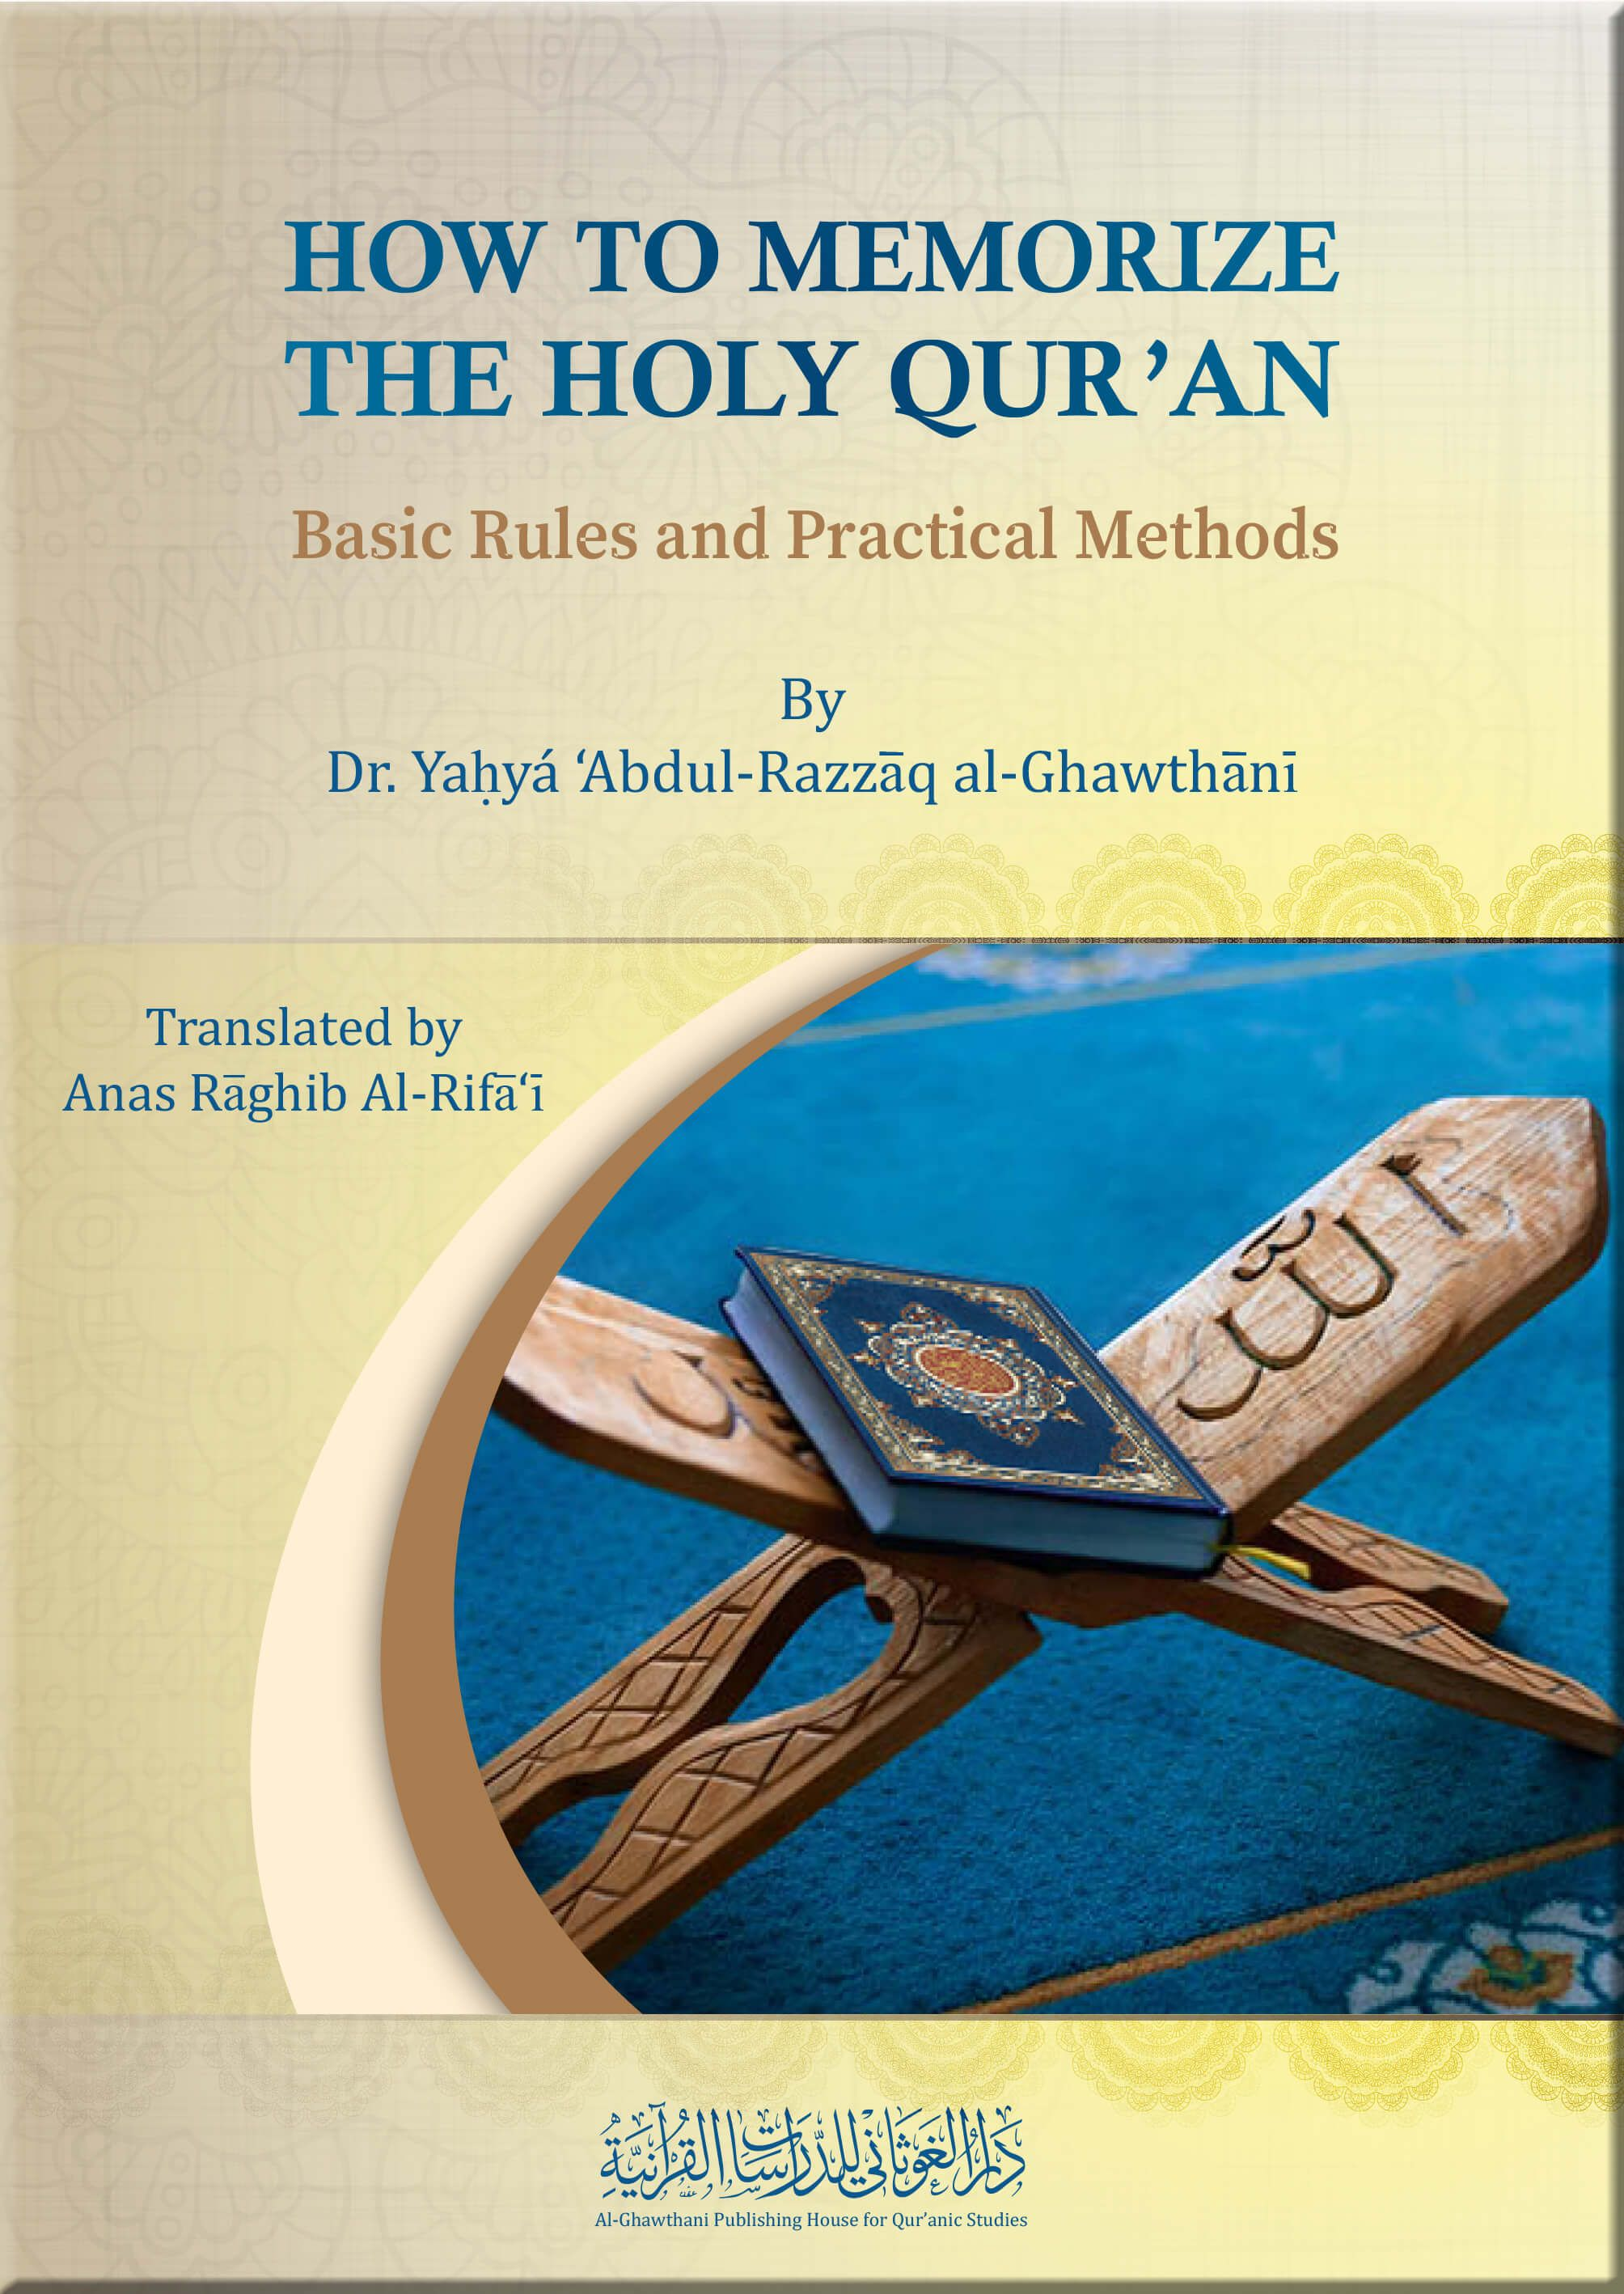 How to Memorize the Holy Quran (English)